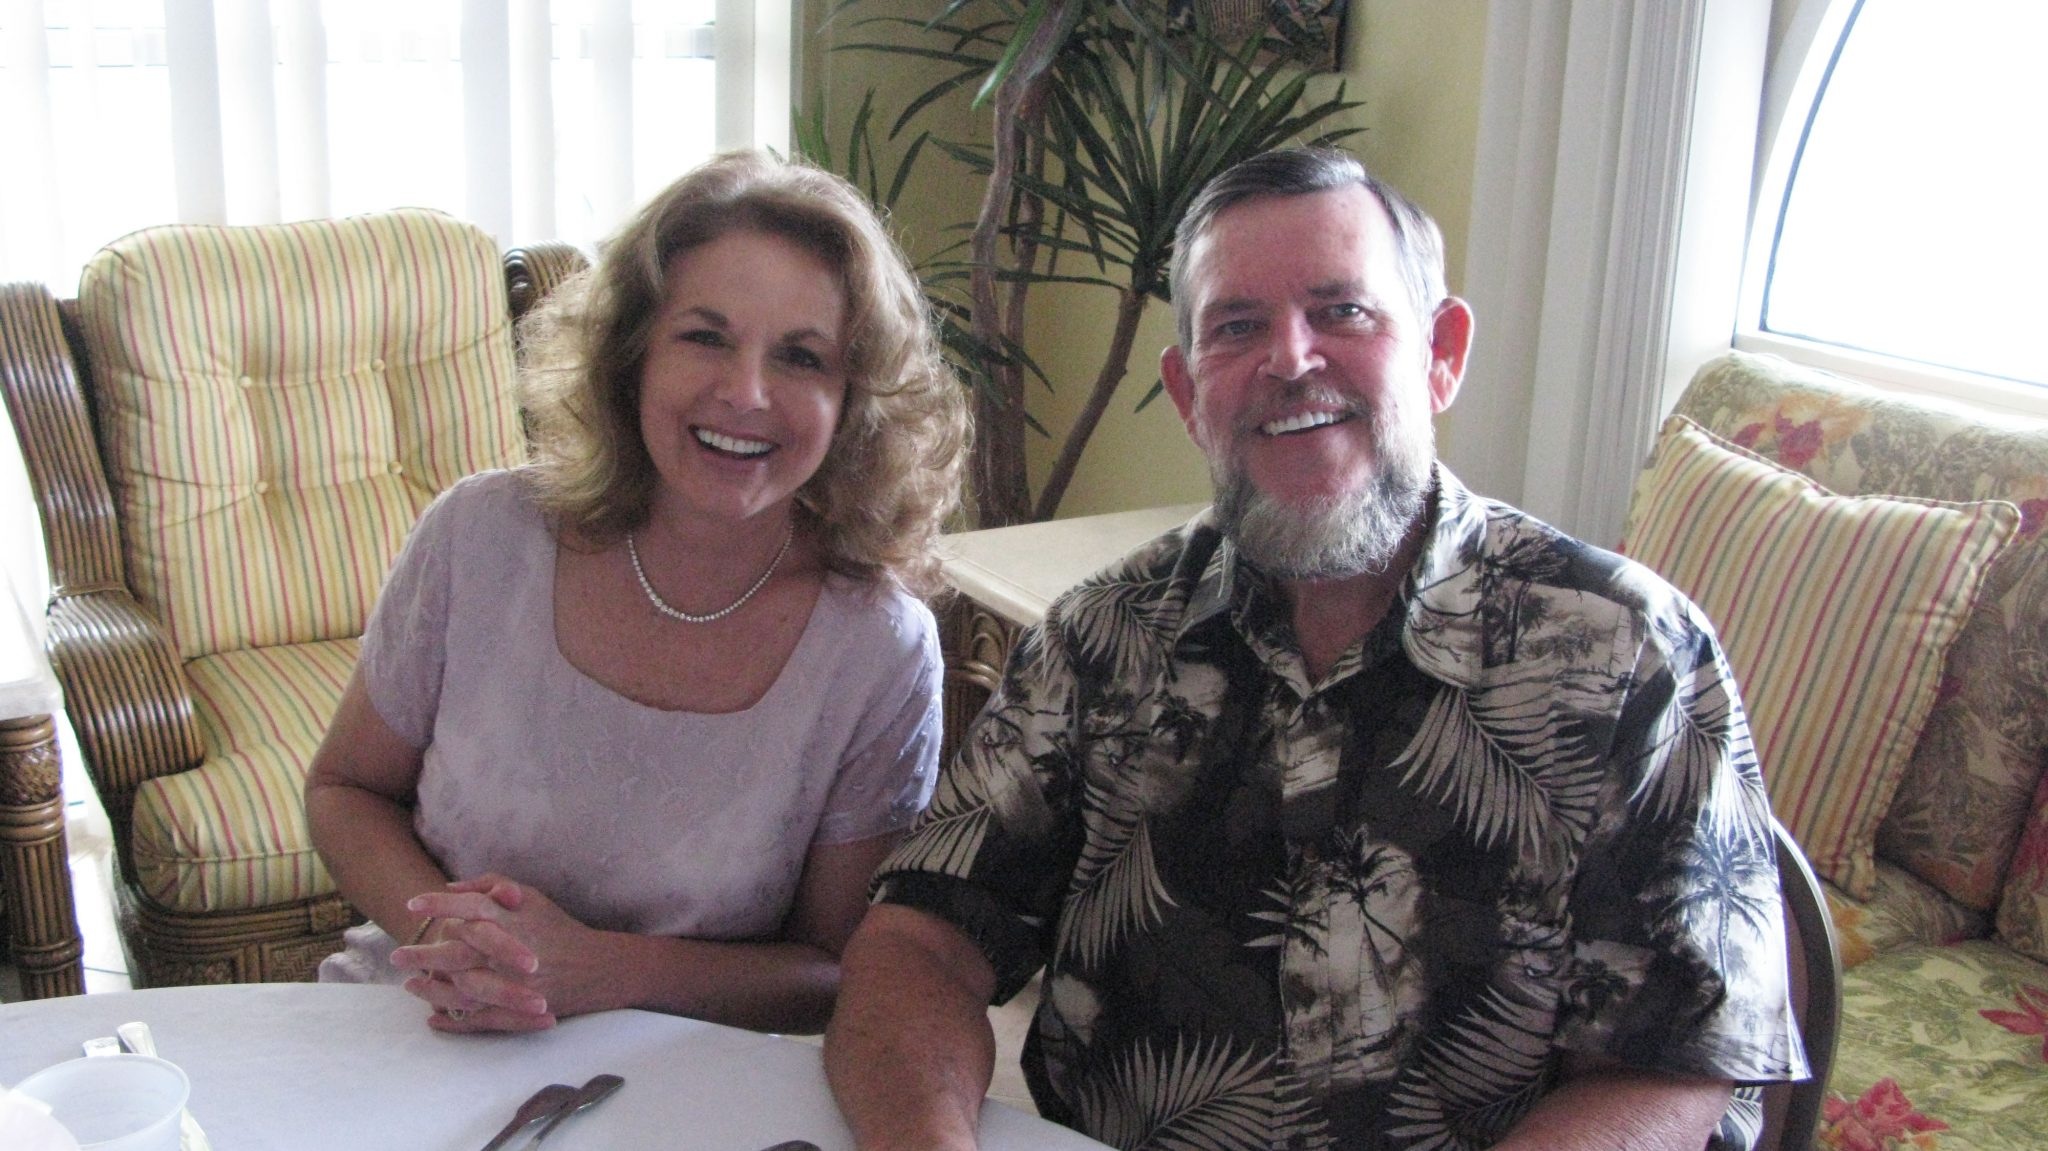 Jack and Yvonne were a wonderful couple who touched many lives.  They lived their faith and were an example to all who knew them.  May that faith continue to sustain the family at this difficult time.  God bless.